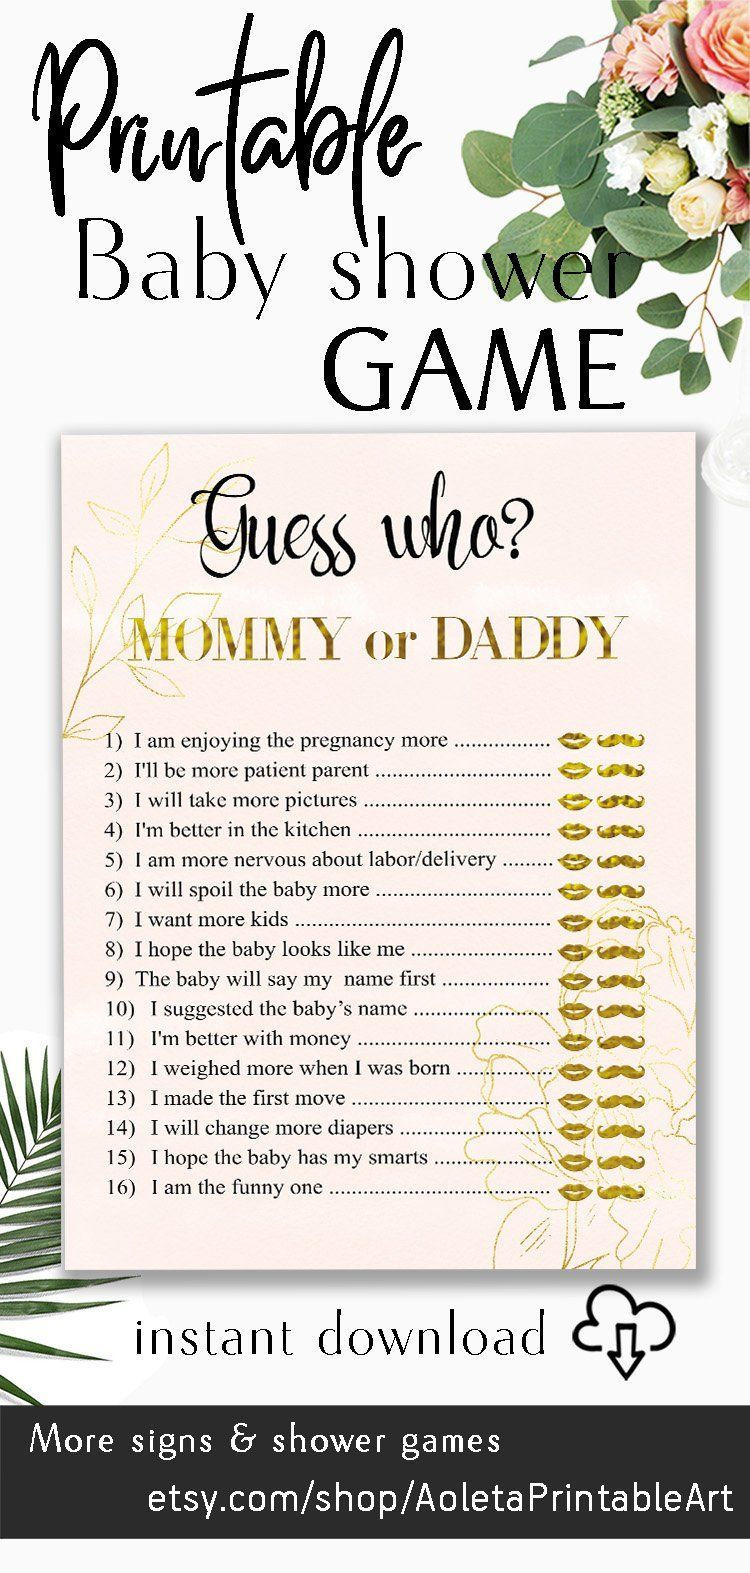 Guess Who? Mommy or Daddy Games Blush Pink Gold PRINTABLE - He Said She Said - Who knows - who said it - Coed Baby Shower Games mom or dad - #- #baby #blush #Coed #Dad #Daddy #games #gold #guess #he #it #knows #Mom #mommy #or #pink #Printable #said #she #shower #who